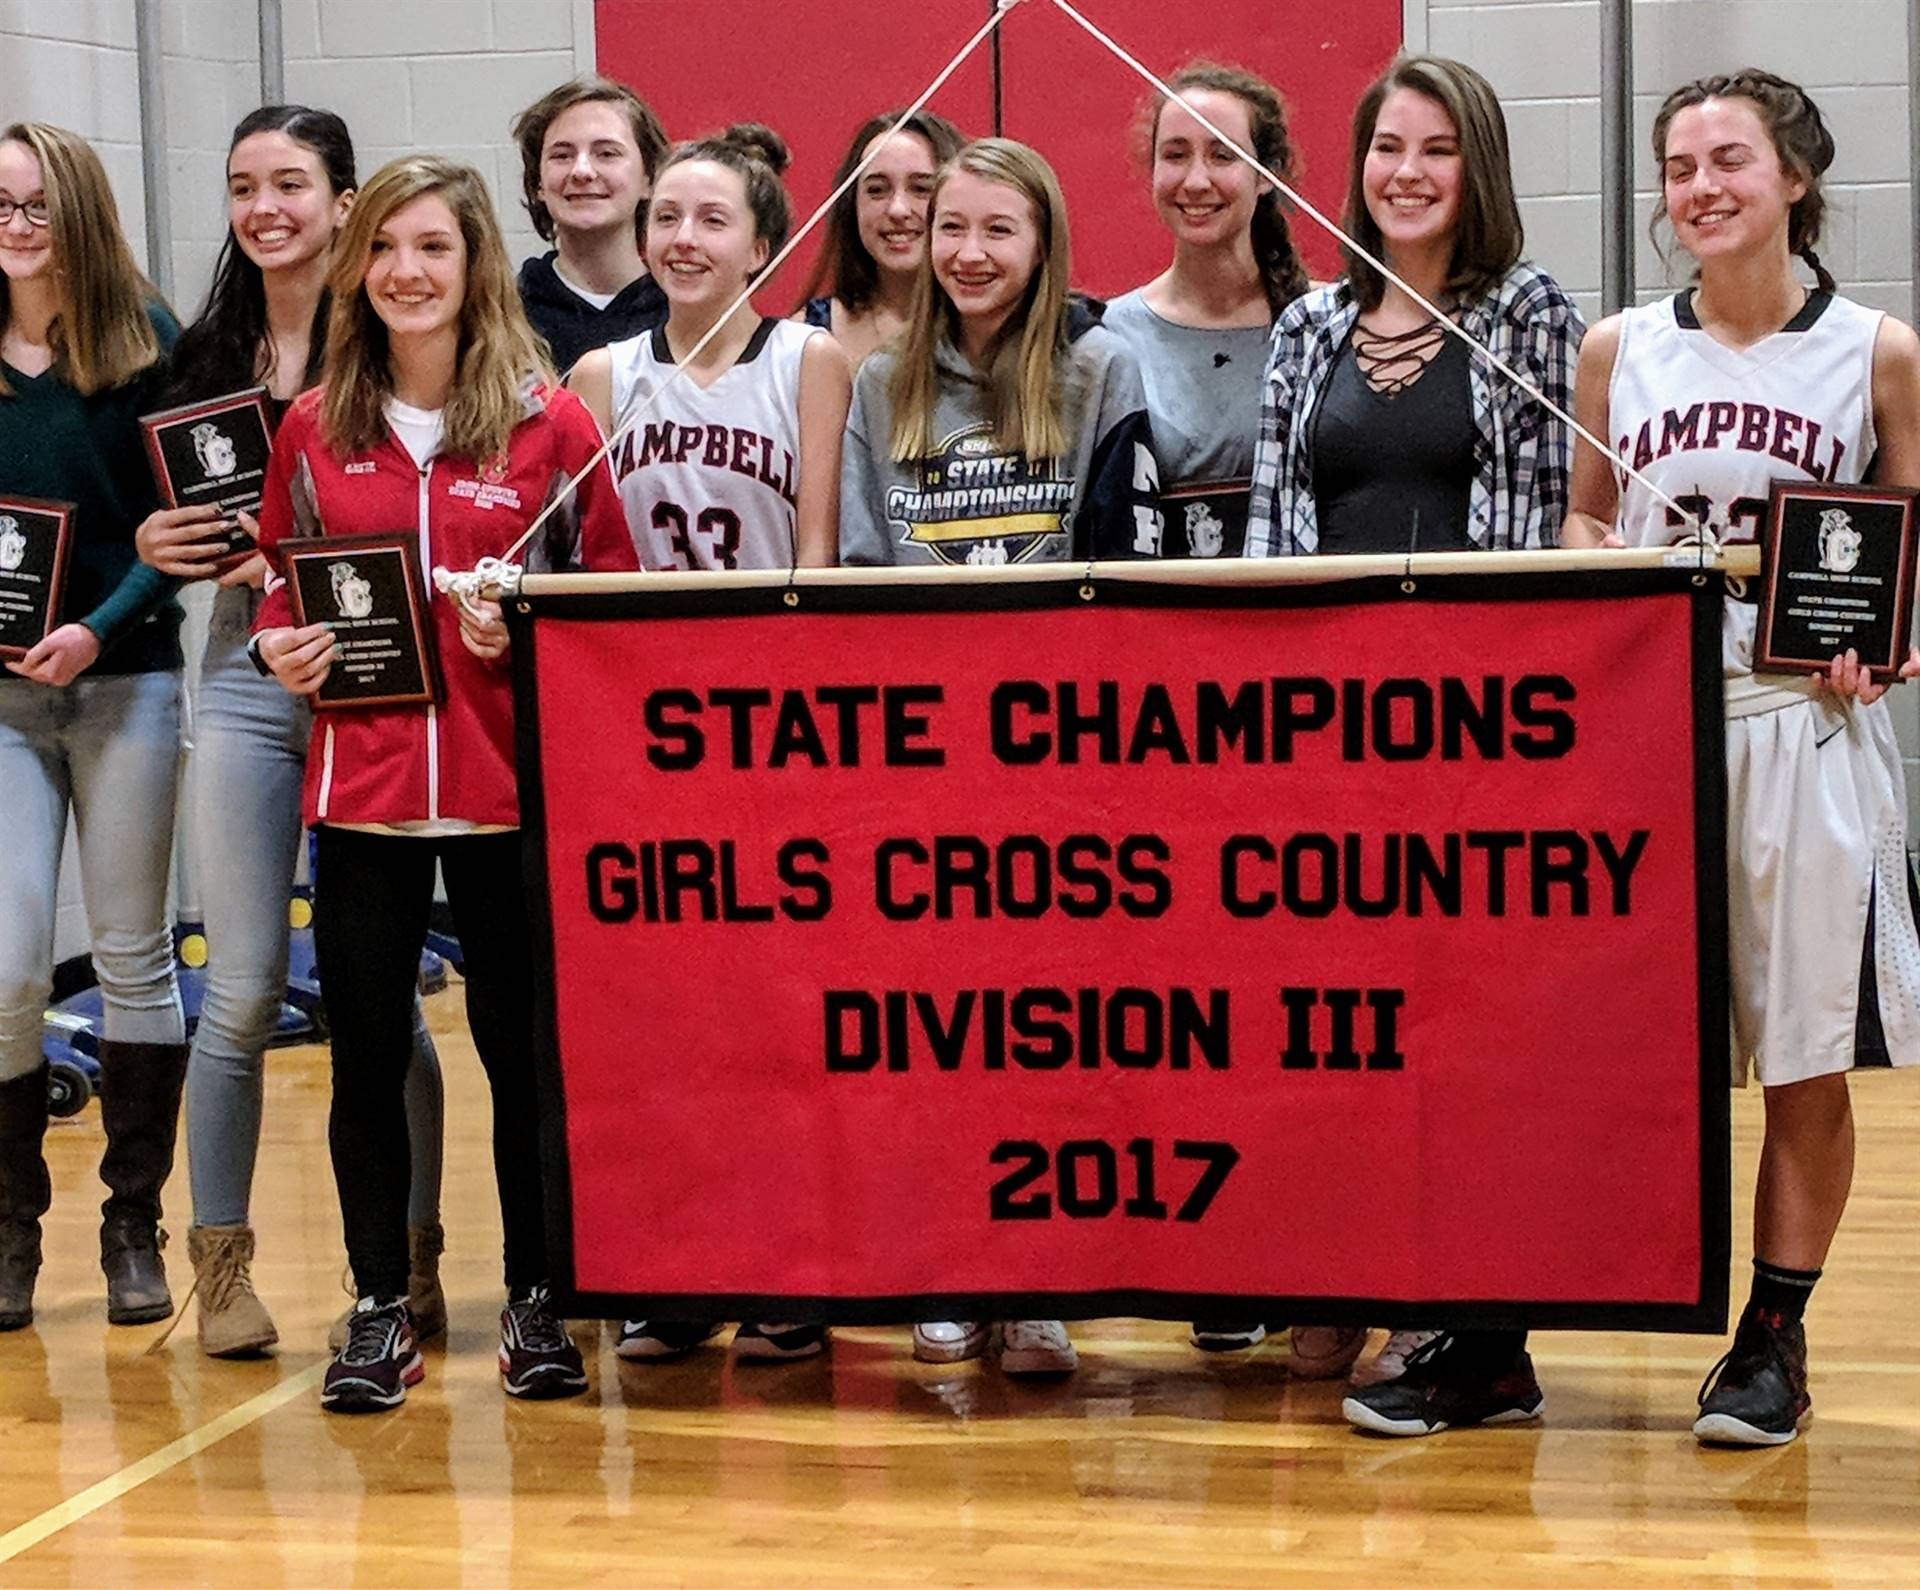 Raising the Girls Cross Country 2017 State Champion banner